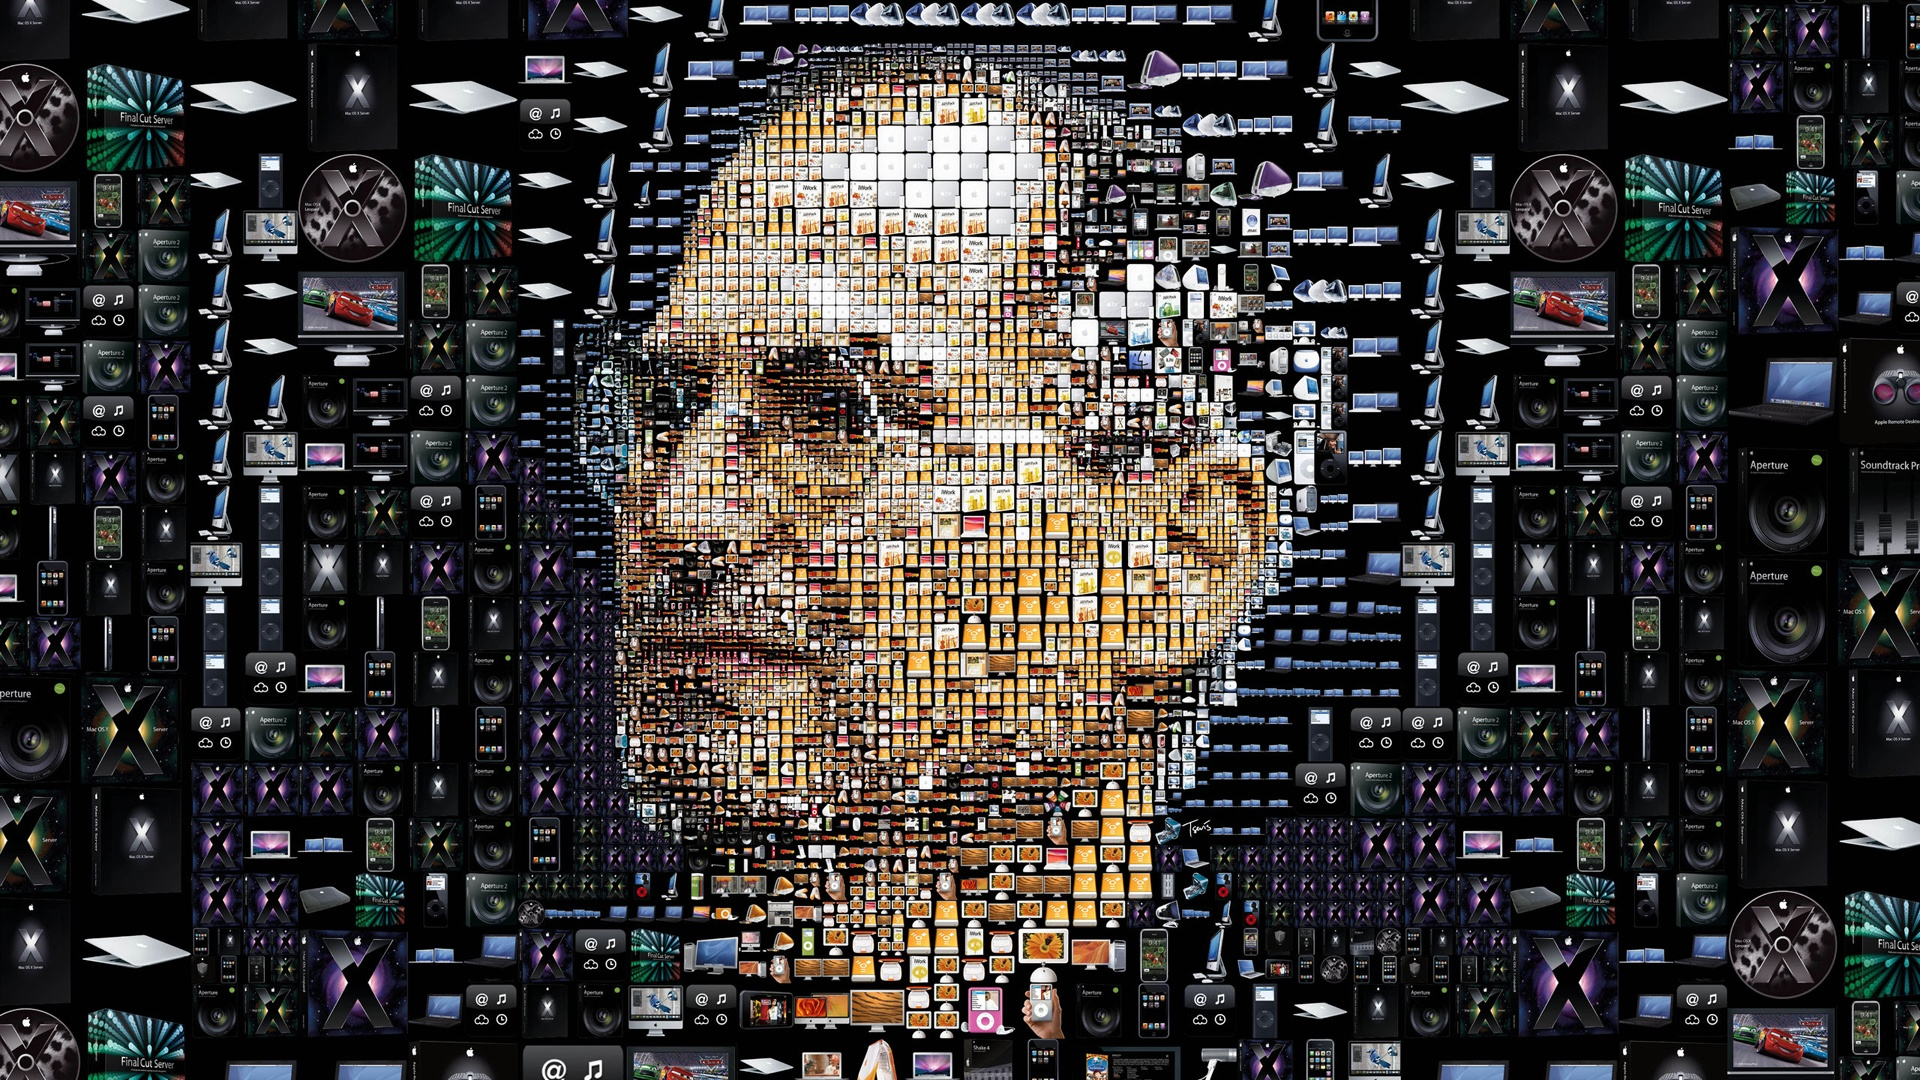 Top 5 Tribute To Steve Jobs Wallpapers 1920x1080